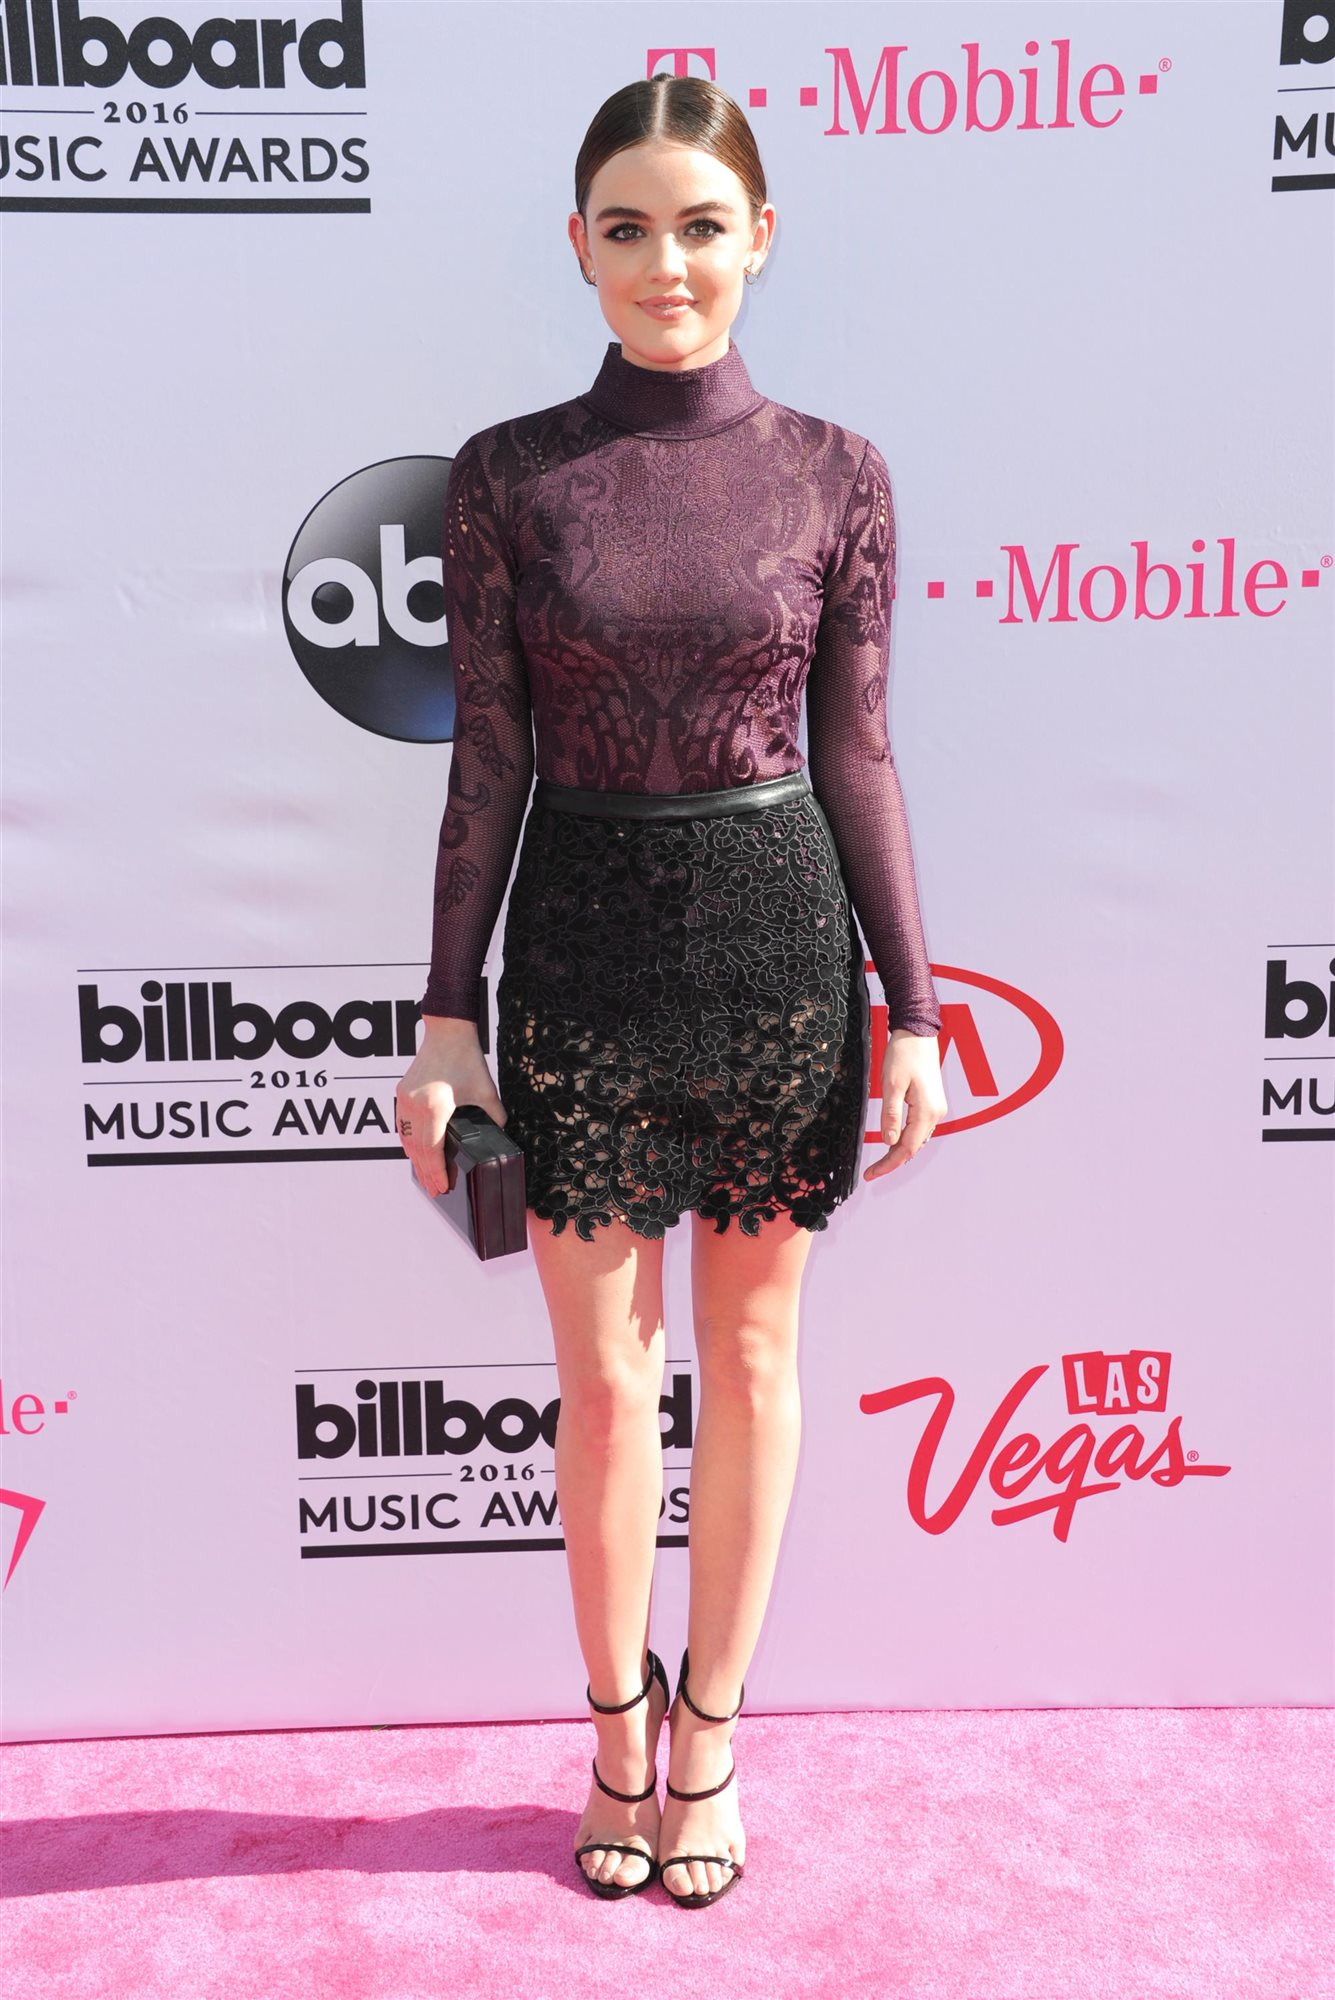 Los Billboard Music Awards 2016 - InStyle